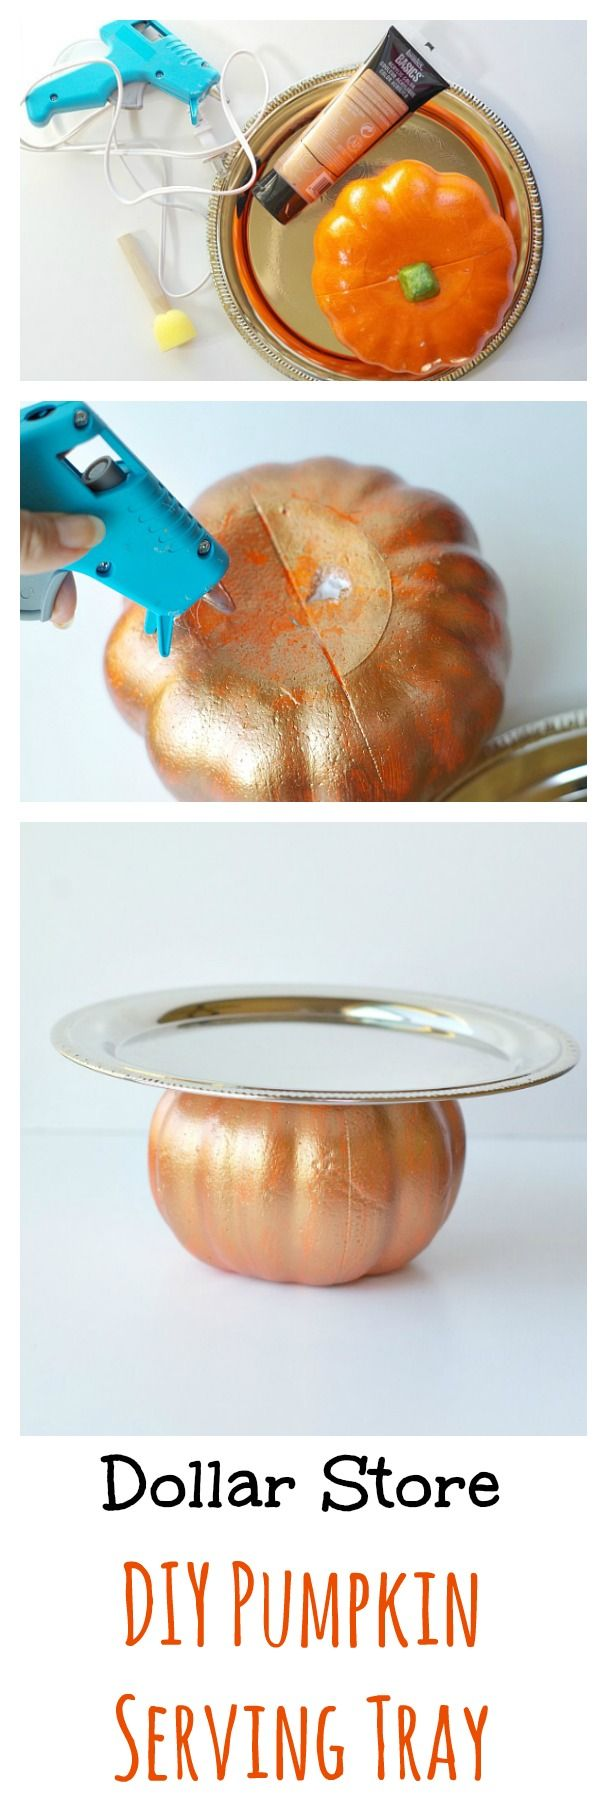 Diy thanksgiving decor pinterest - Dollar Store Diy Pumpkin Serving Tray Diy Thanksgiving Decorationsfall